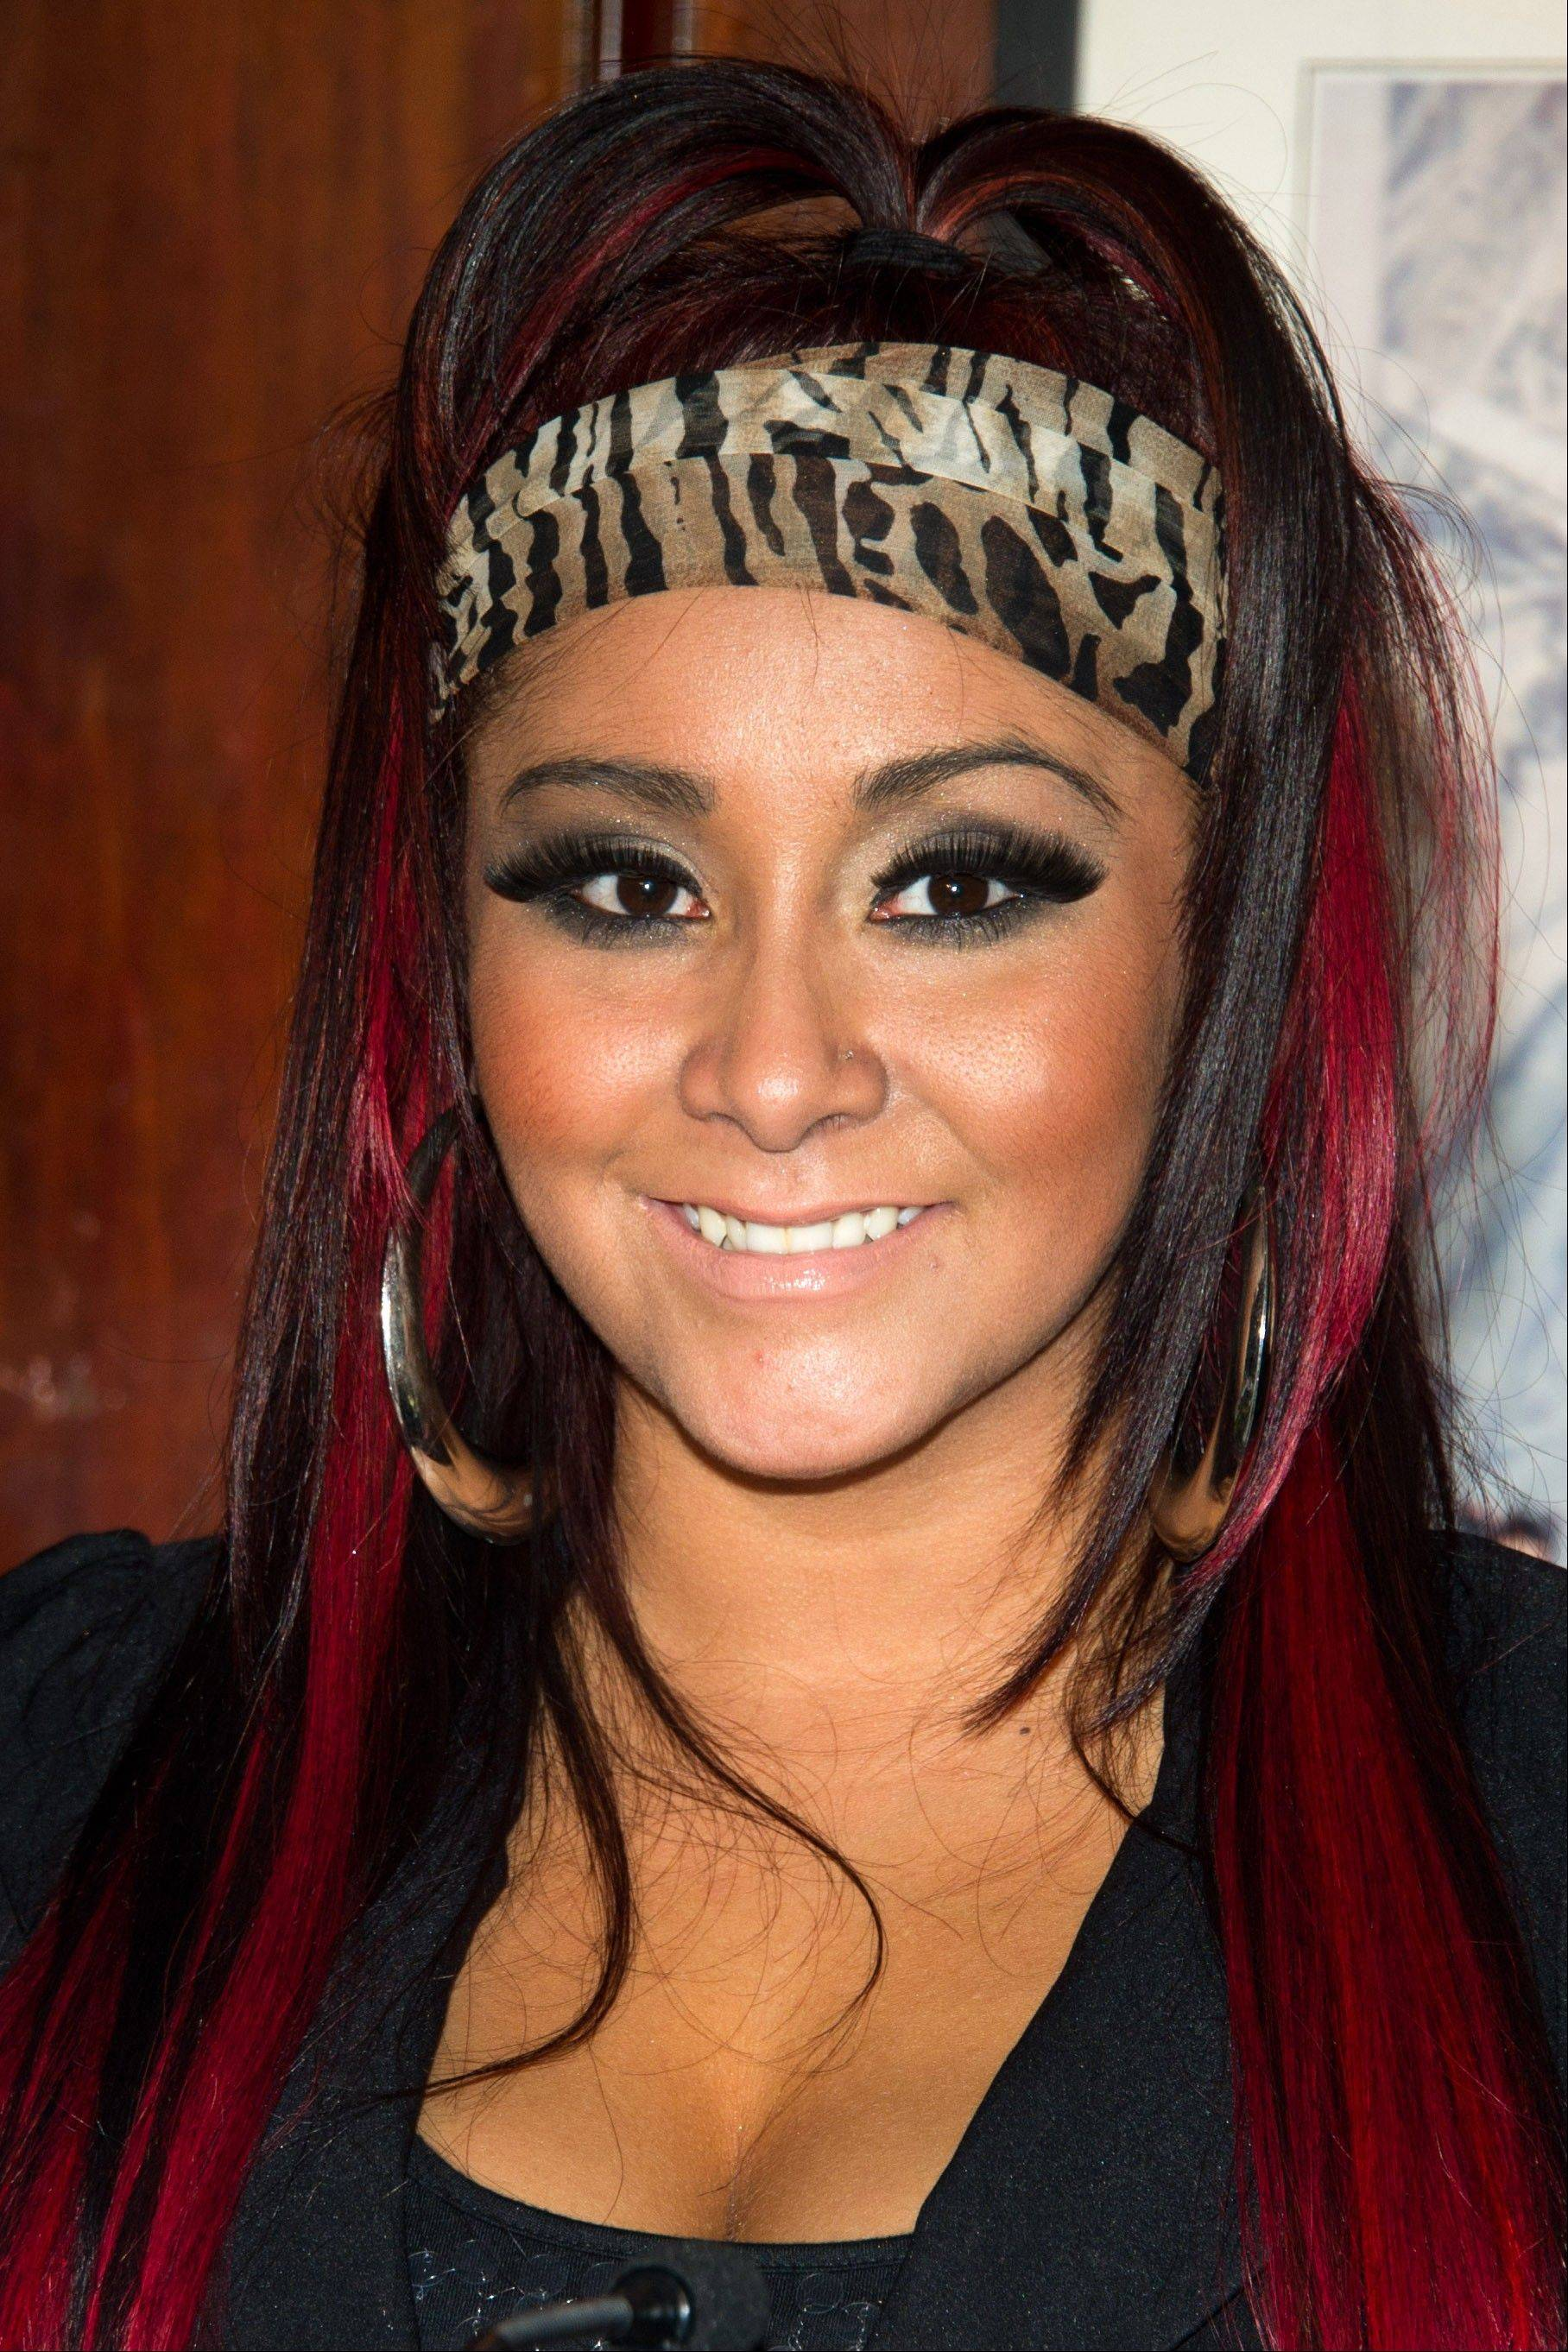 Nicole �Snooki� Polizzi attends a press event to announce her new venture, Team Snooki Boxing and the upcoming boxing matches featuring Ireland�s Hyland brothers, in New York, in this Jan. 12, 2012 file photo. Snooki gave birth to her first child early Sunday morning at Saint Barnabas Medical Center in Livingston N.J. according to MTV. A baby boy weighing 6lbs, 5oz.